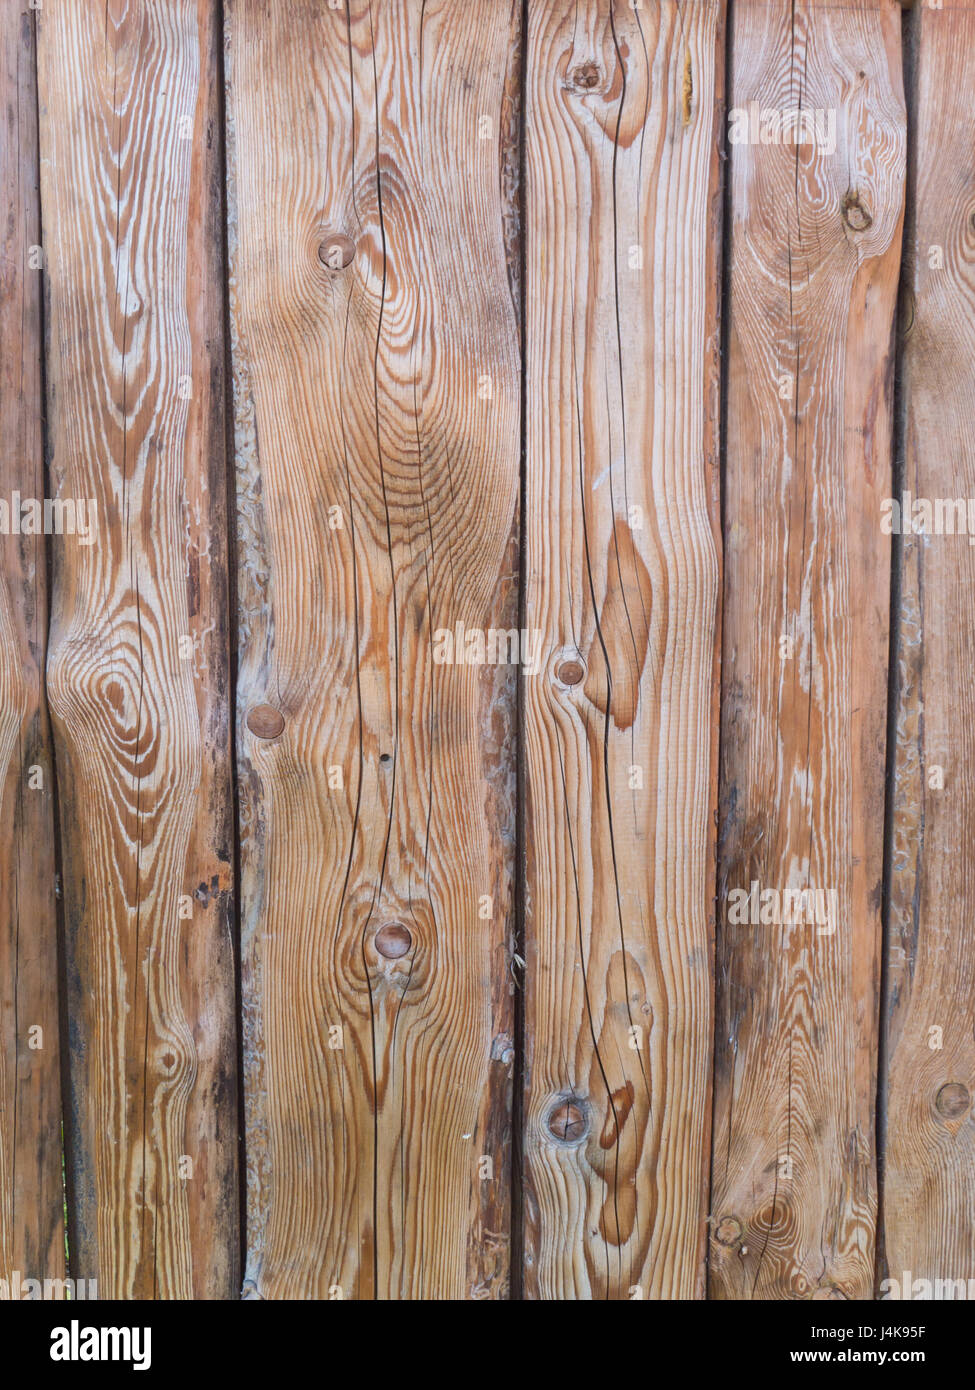 Wooden textured planks with cracks and holes background - Stock Image